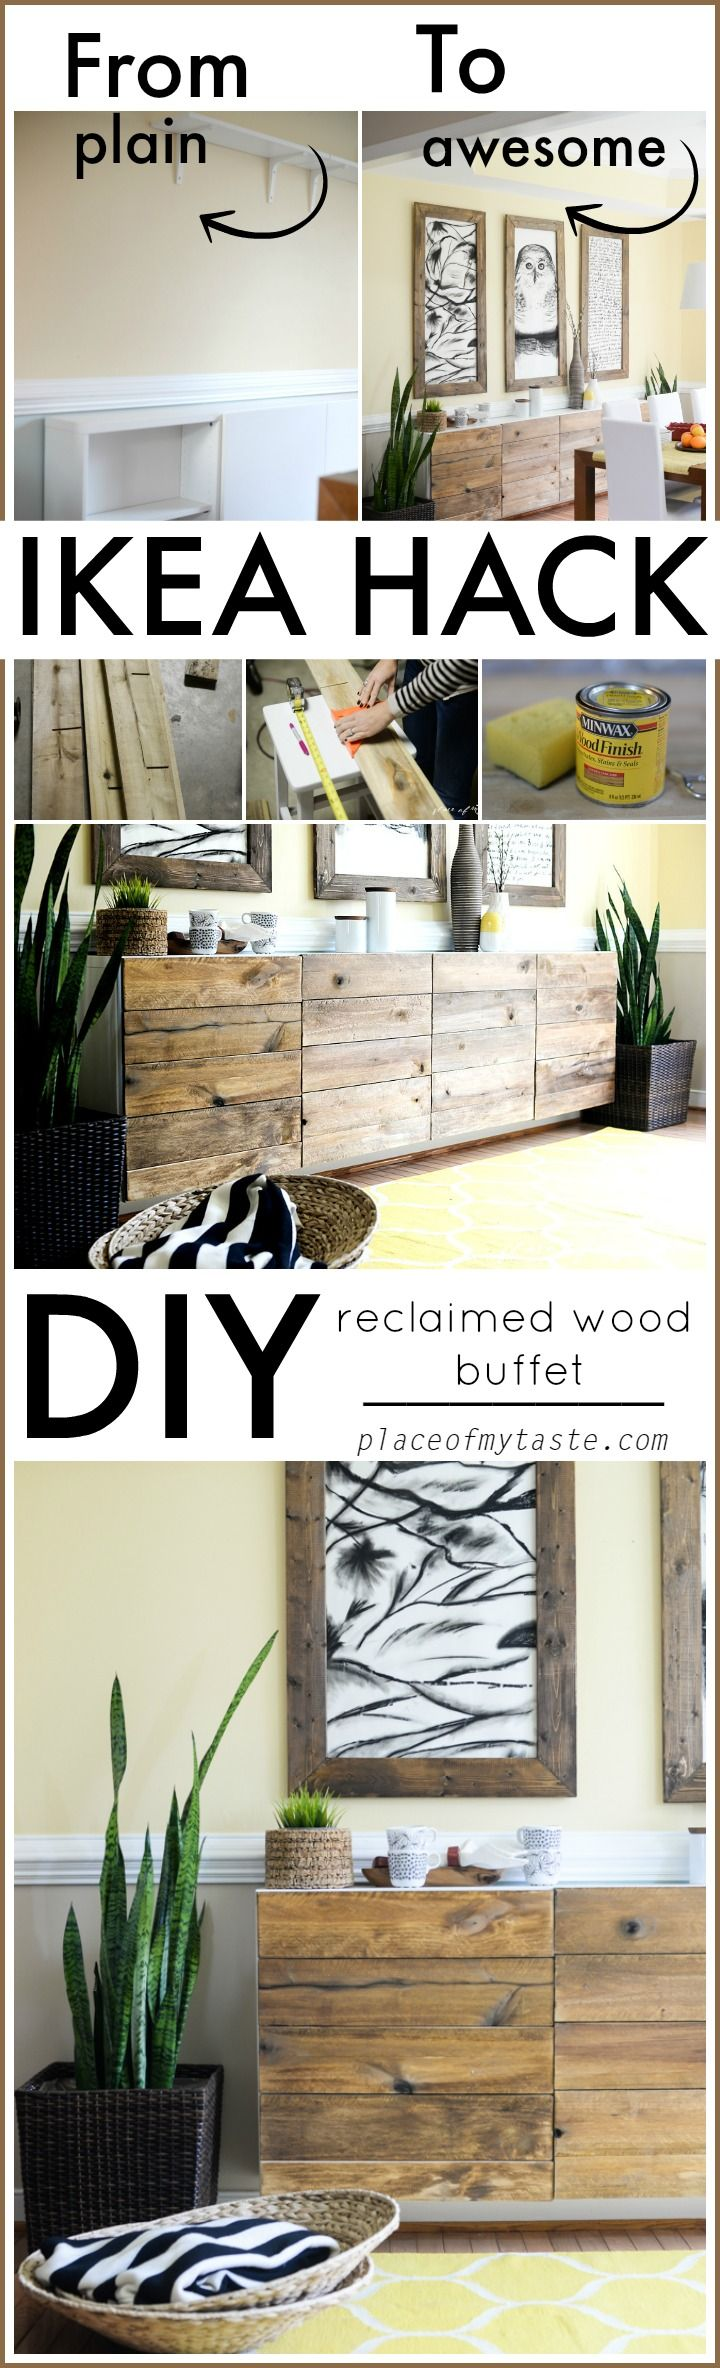 What a fabulous IKEA HACK! Come and see it yourself!